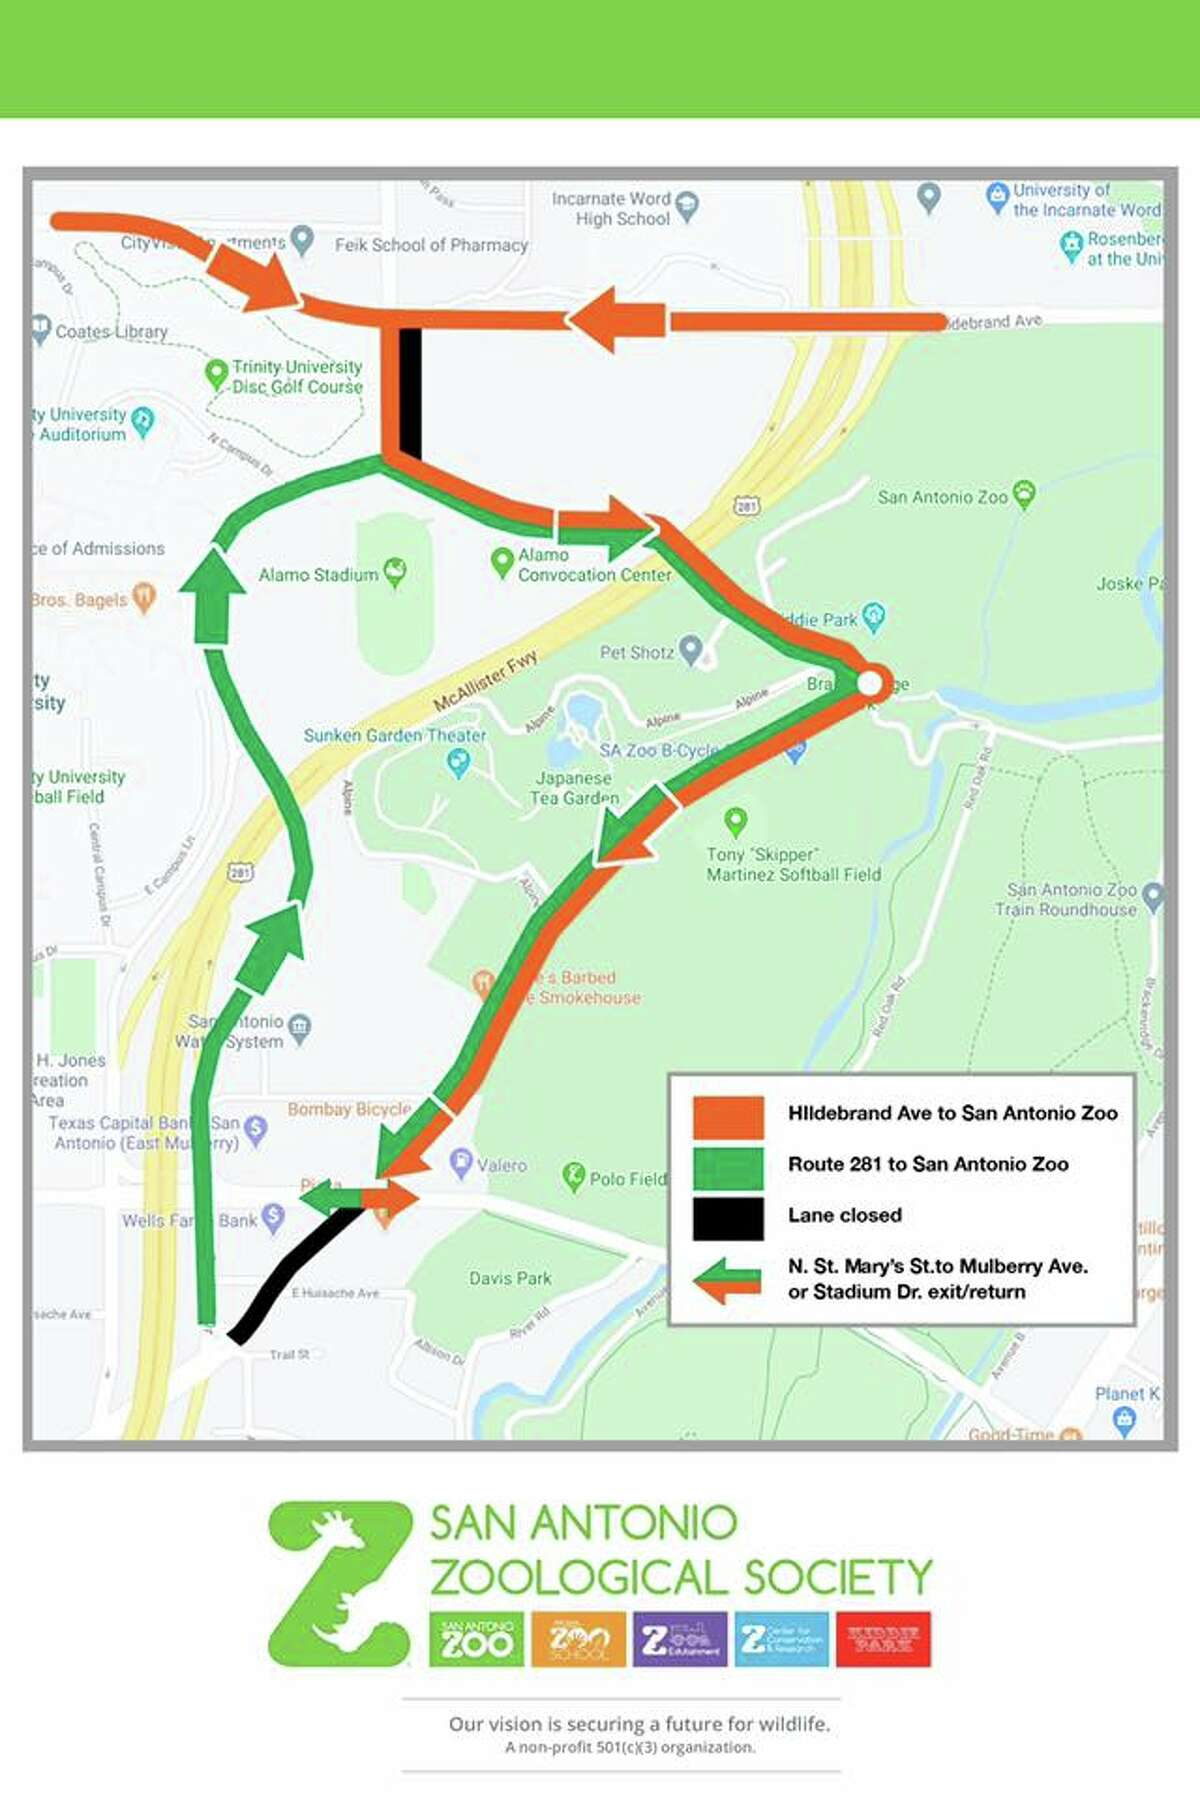 In an effort to ease the traffic problems around Brackenridge Park for spring break, the San Antonio Zoo and the city have created a new traffic plan for the area.